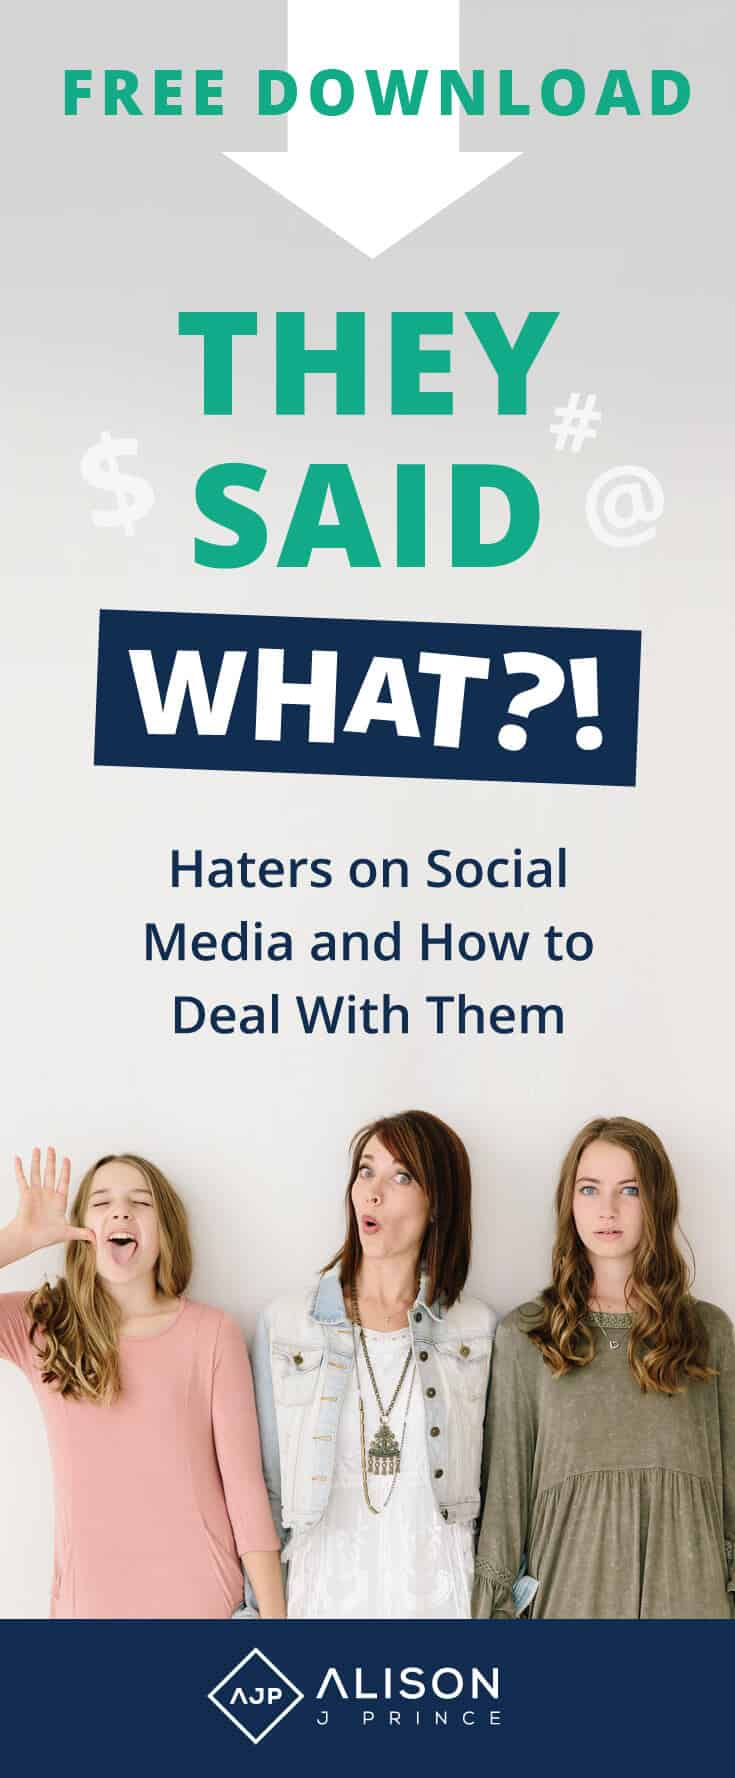 Ecommerce - dealing with haters on social media - Alison Prince